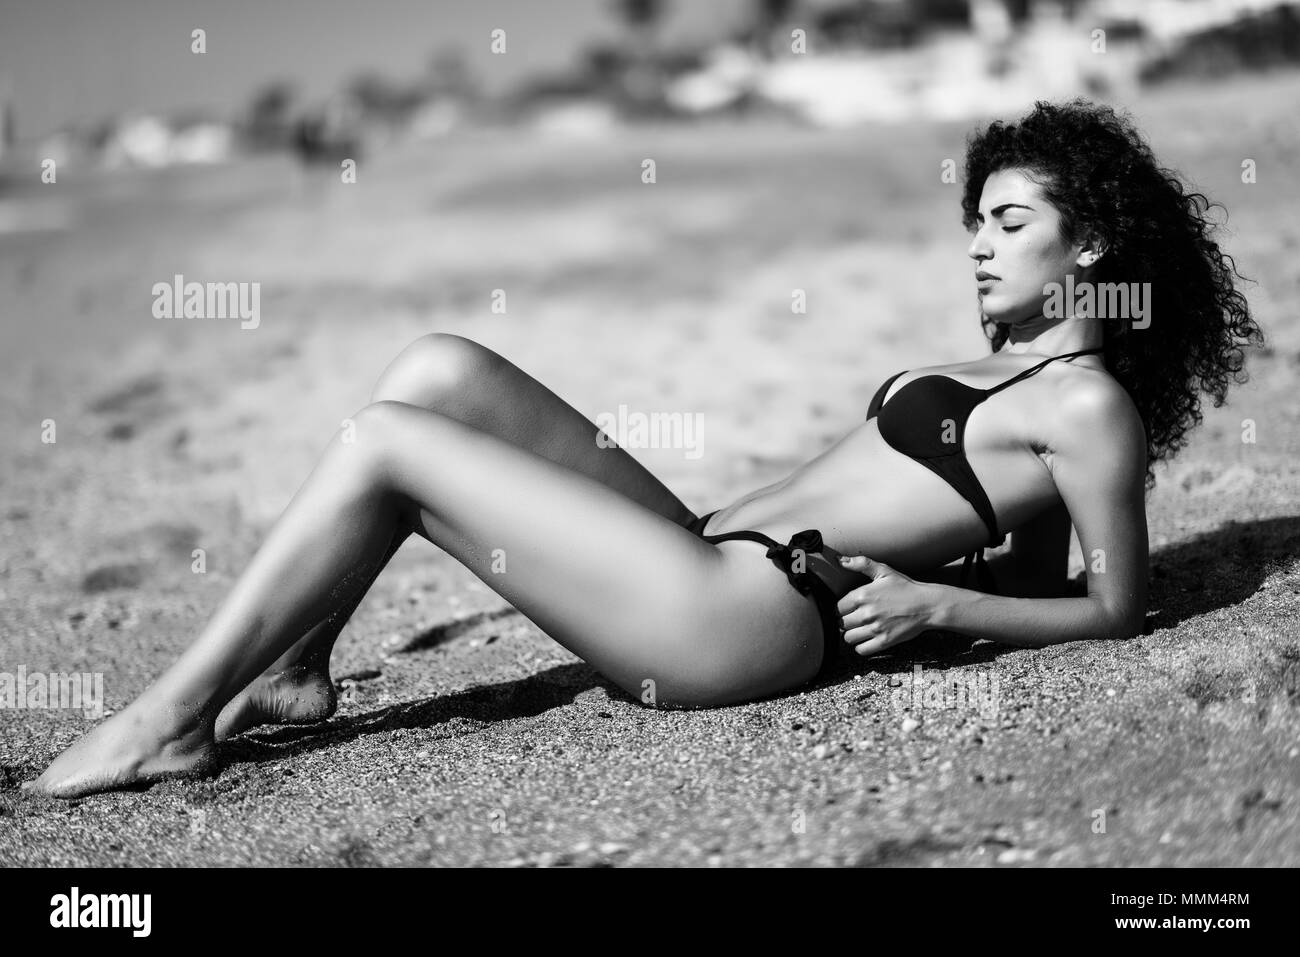 Young arabic woman with beautiful body in swimwear lying on the beach sand. Brunette female with curly long hairstyle wearing black bikini with eyes c - Stock Image